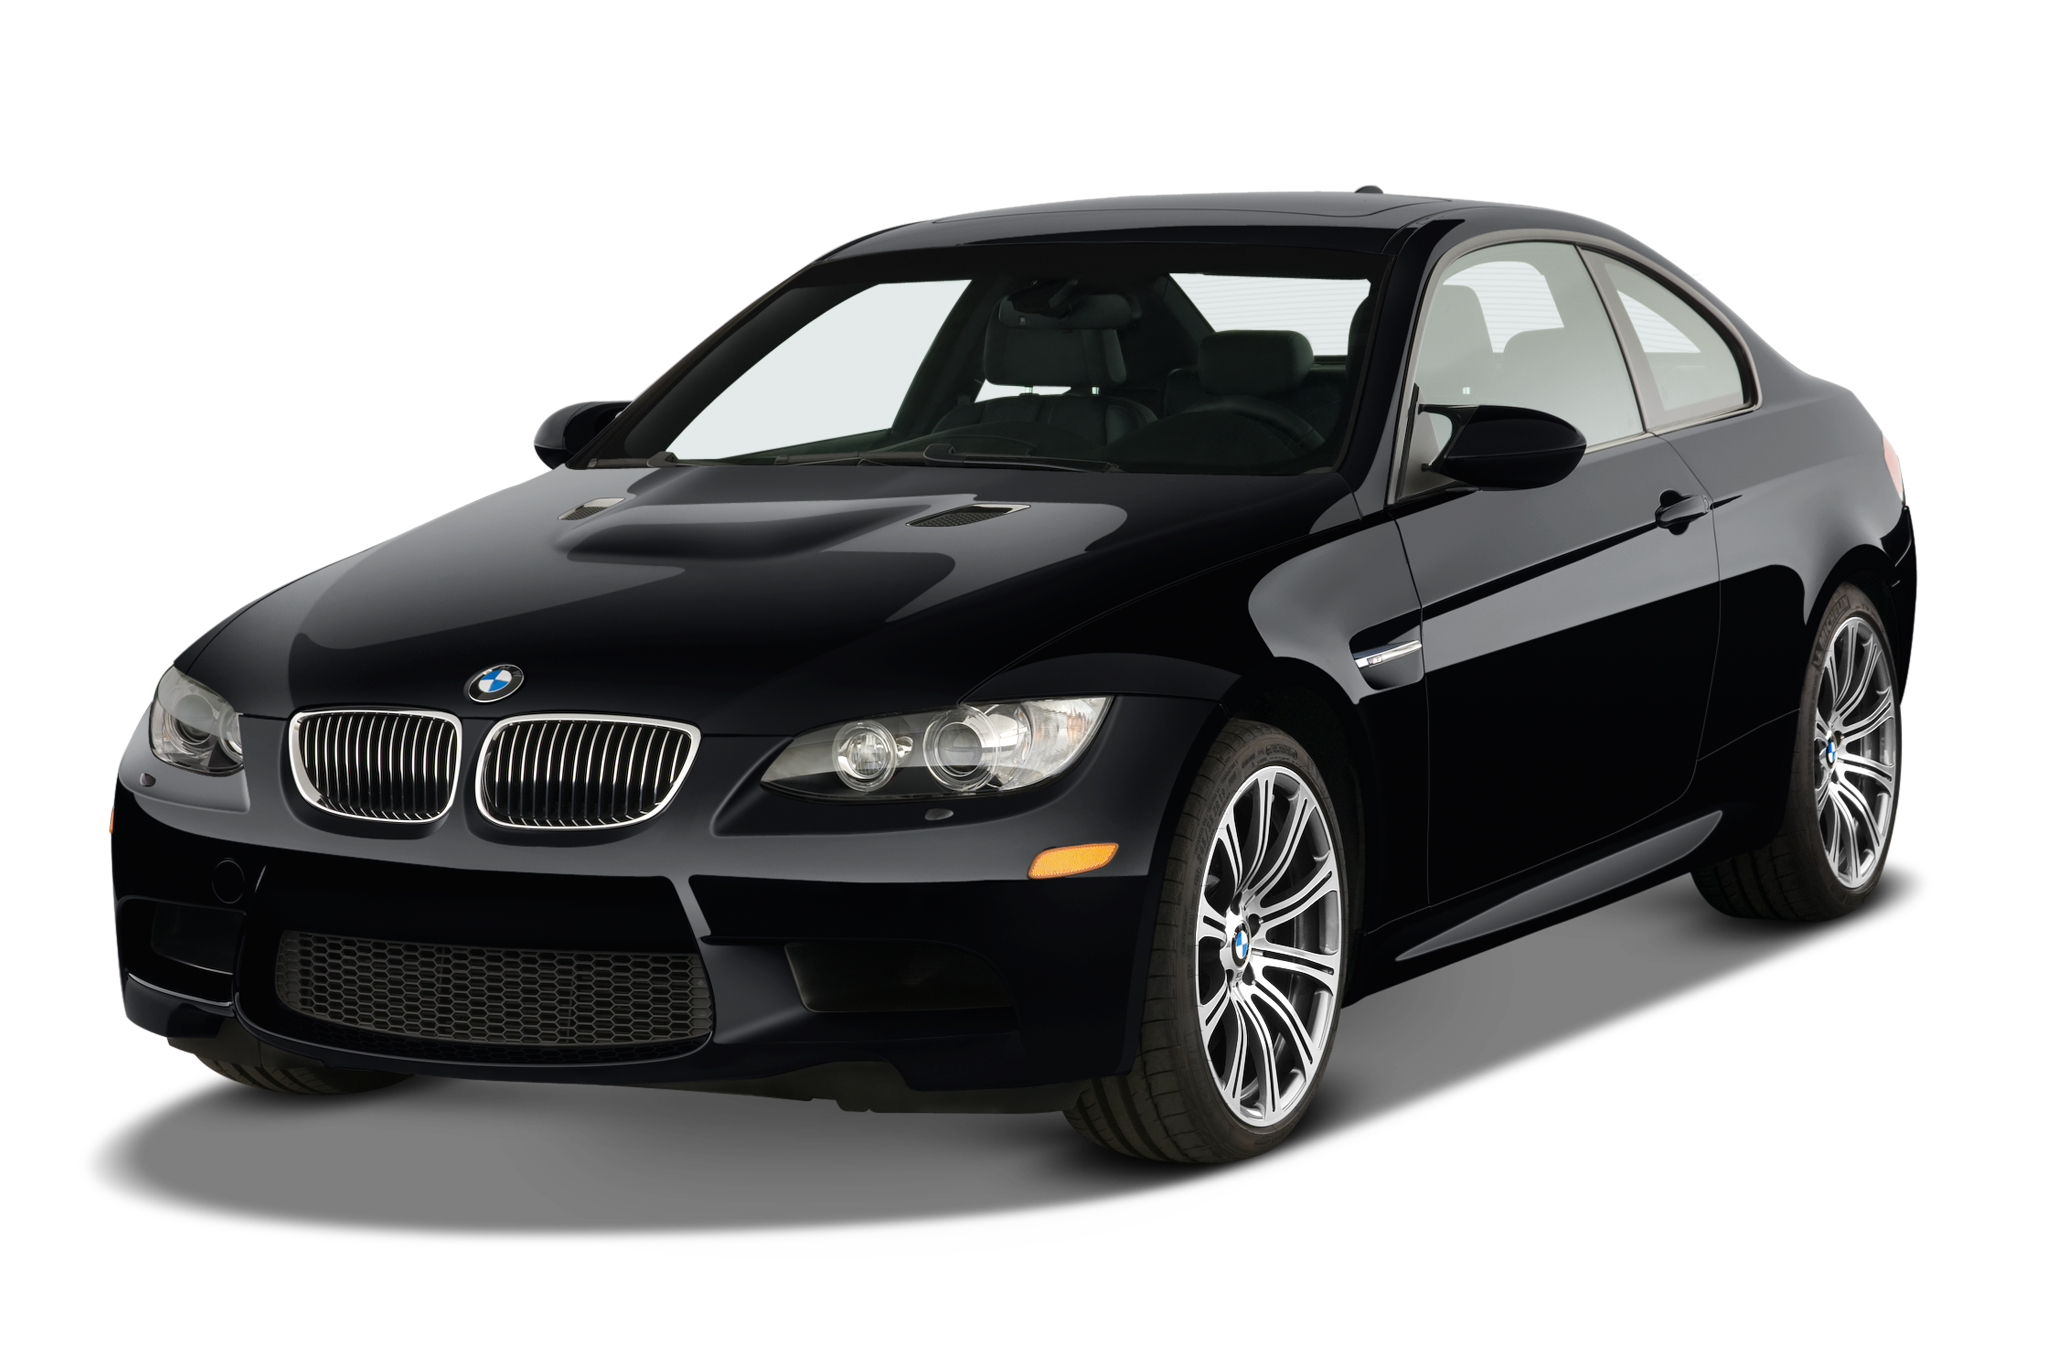 2013 bmw 3 series m3 coupe specs and features msn autos - 2013 bmw 335i coupe specs ...